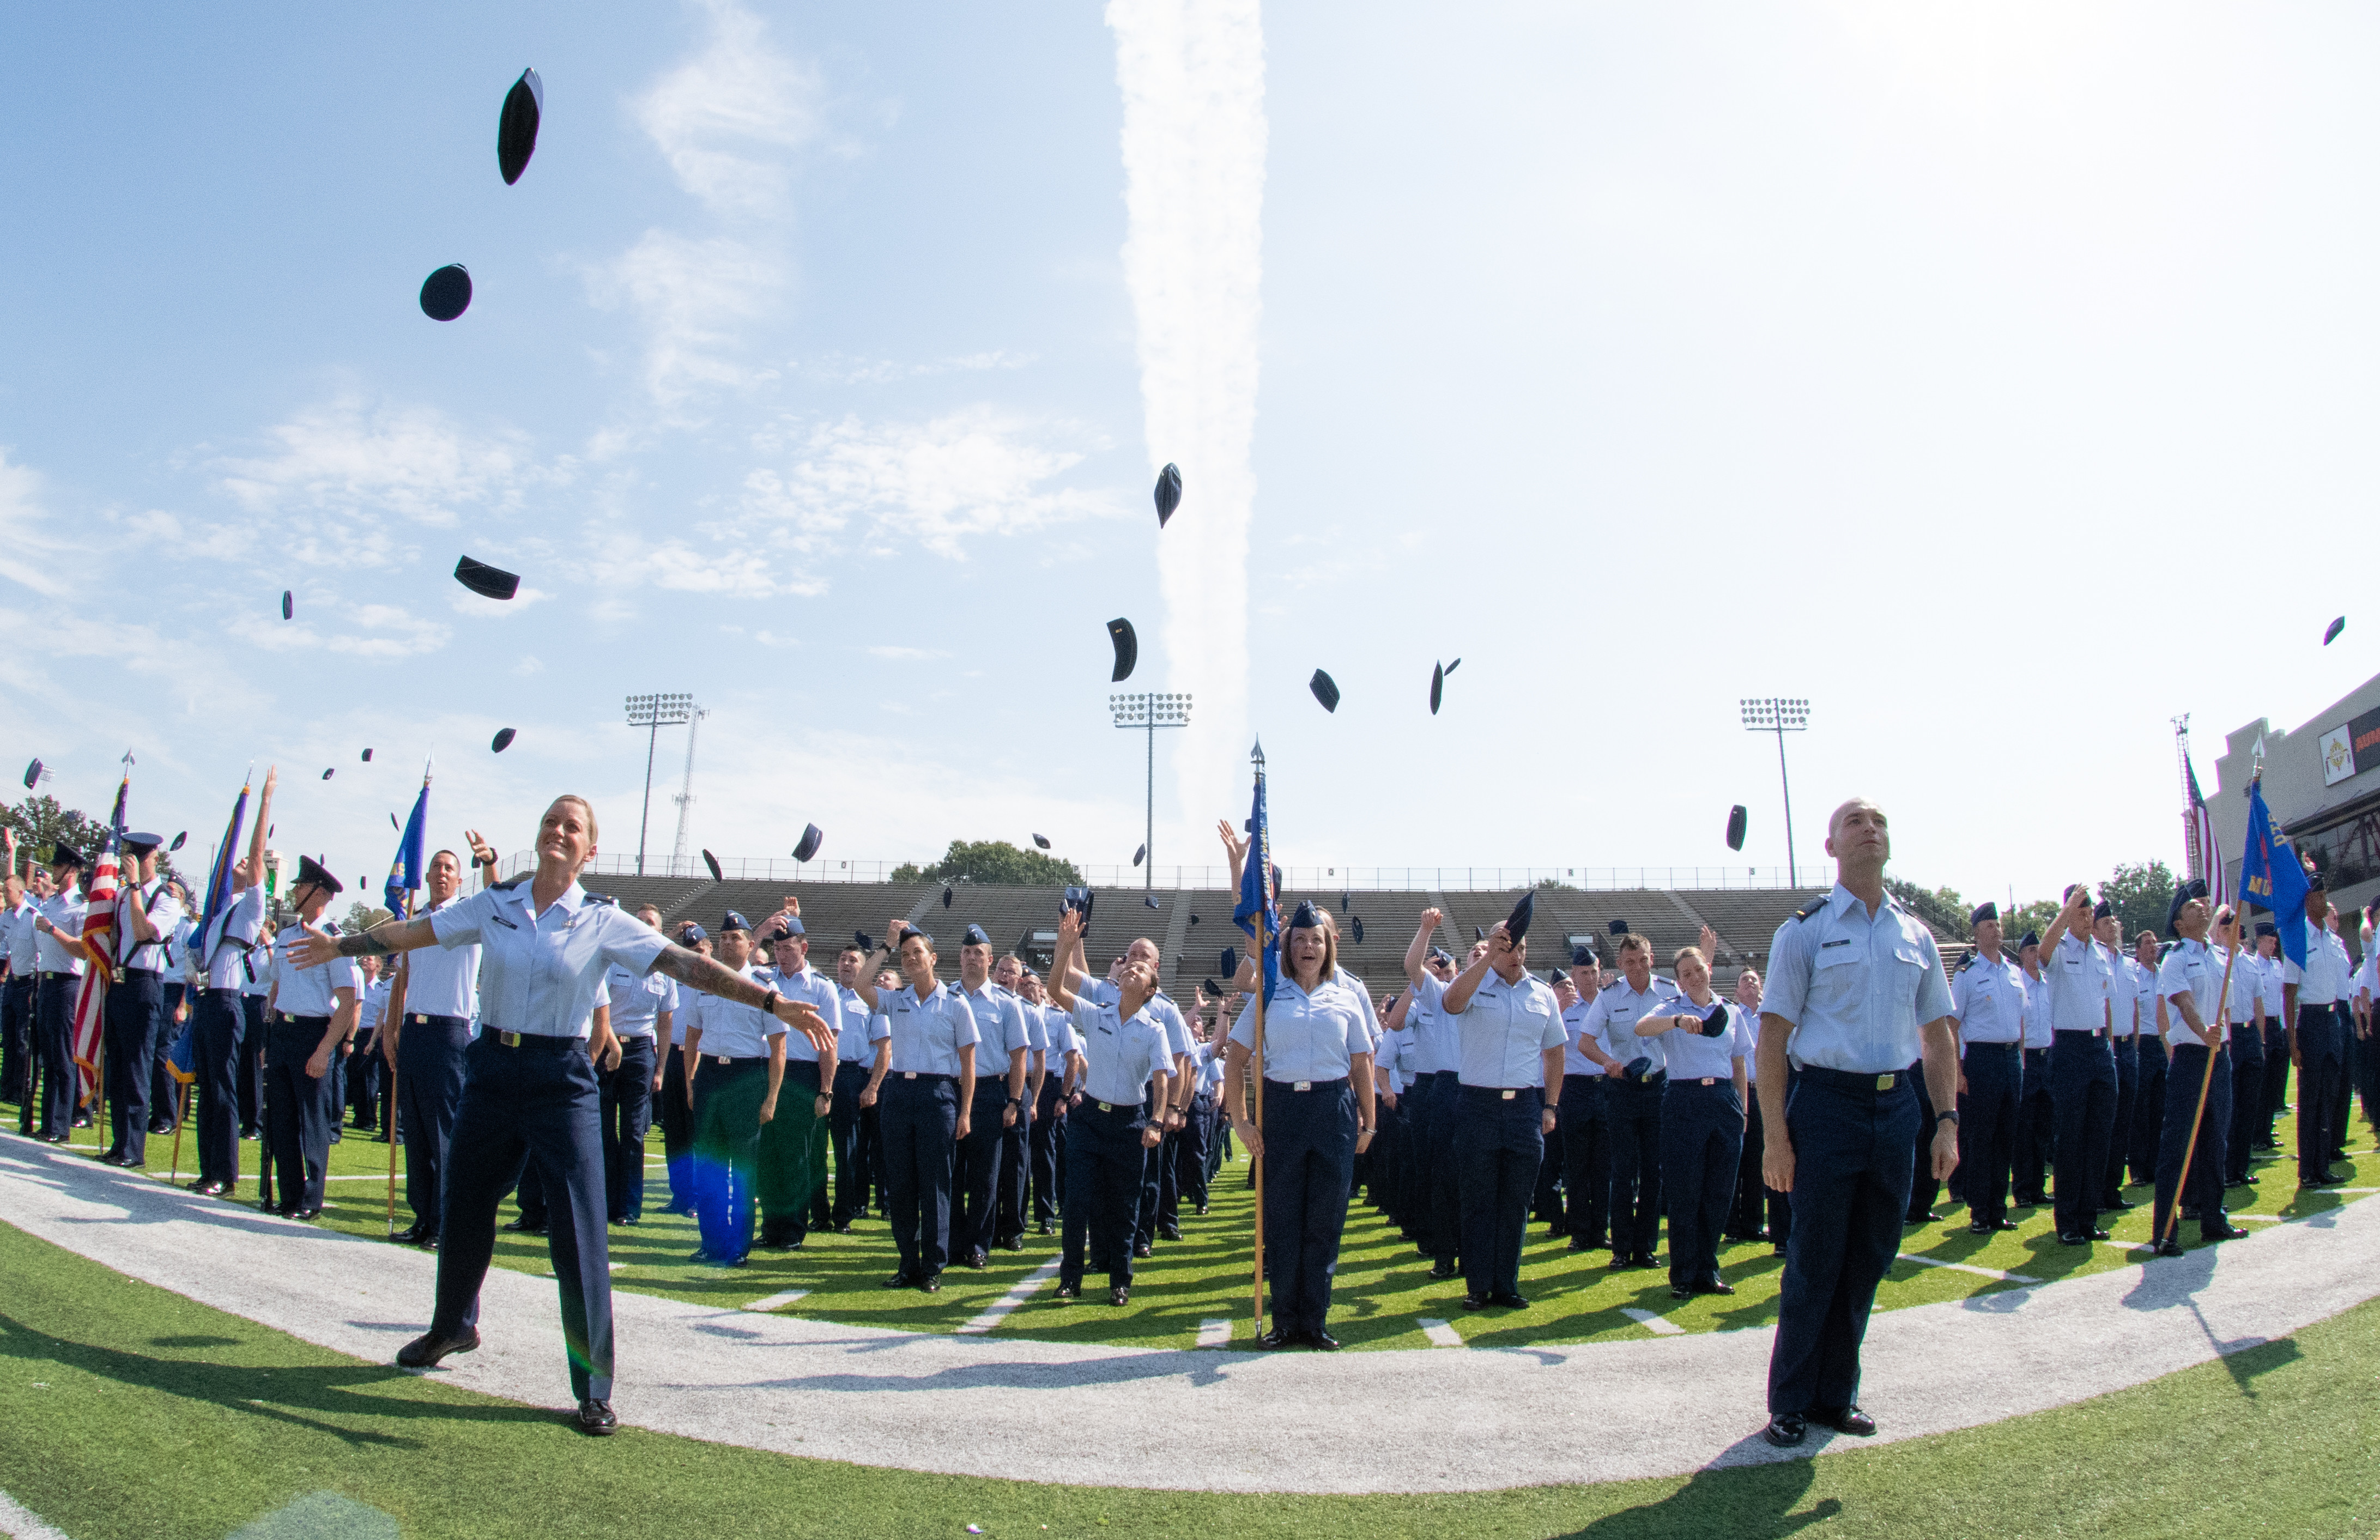 """The Air Force's newest commissioned officers a part of Officer Training School class 19-07 throw their flight caps in the air following their graduation ceremony Sept. 27, 2019, in Montgomery, Alabama. Officer Training School's class 19-07, or also known as """"Godzilla Class"""" is the school's largest class in history and pushed OTS to its maximum capacity. (Airman 1st Class Charles Welty/Air Force)"""